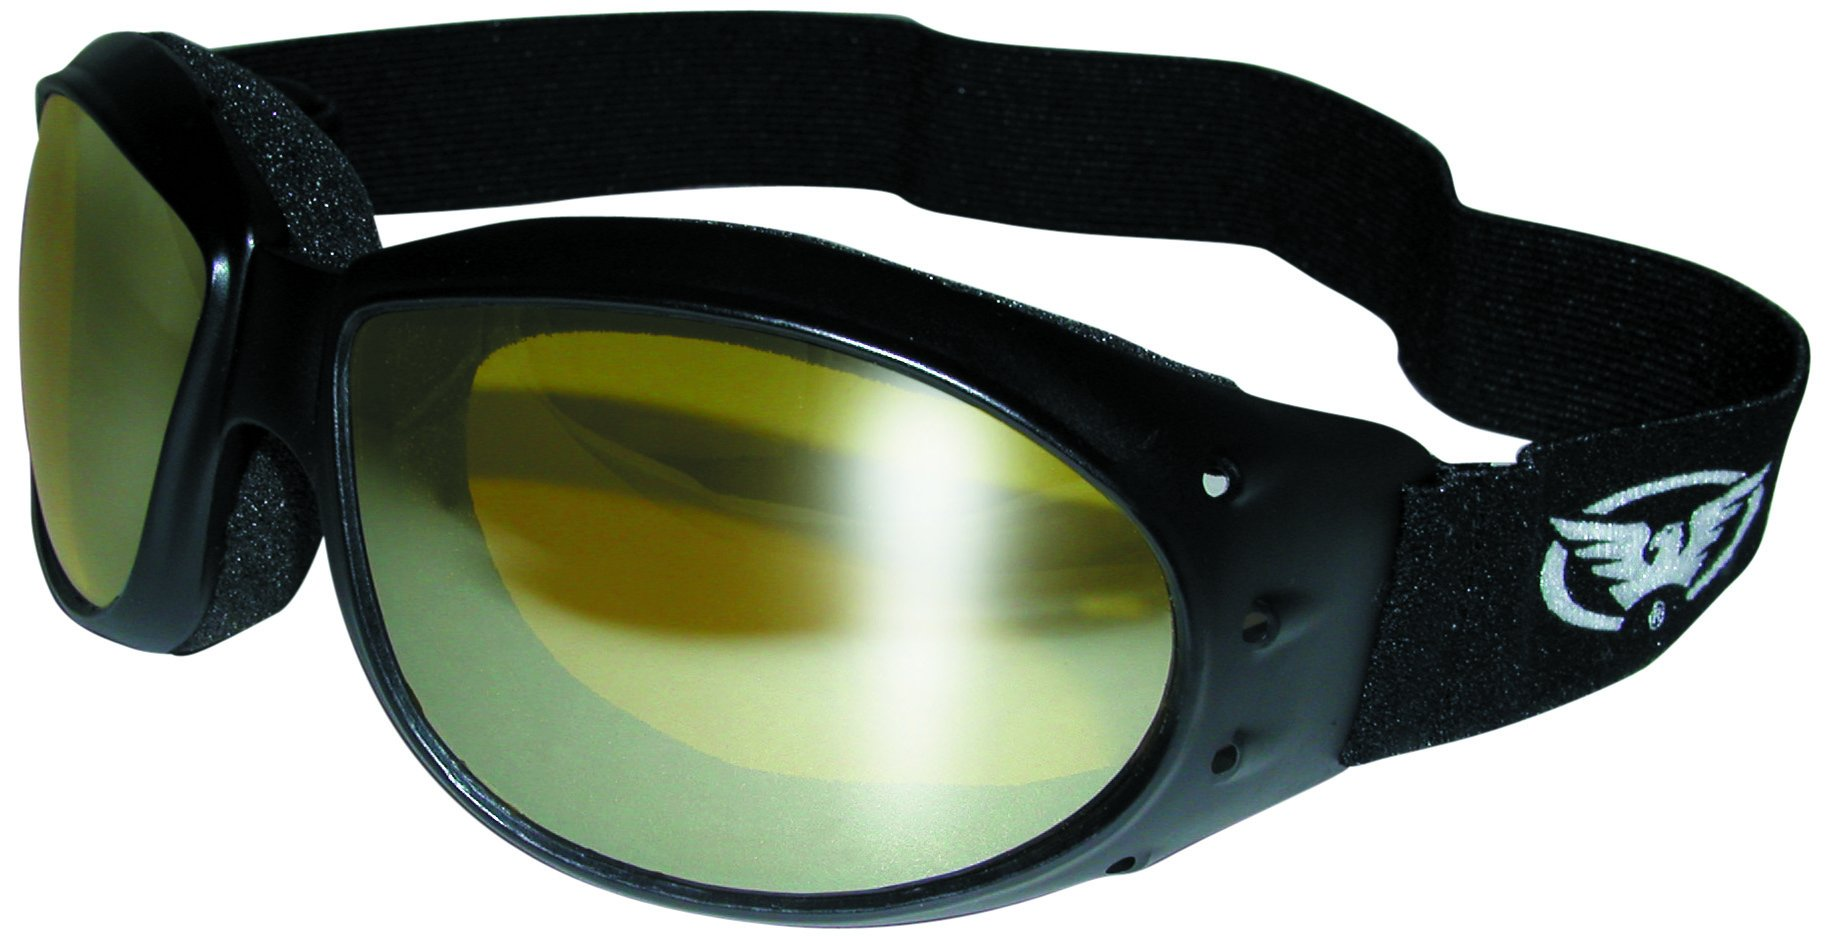 Global Vision Eyewear Eliminator Goggle Series Sunglasses Yellow Tint Mirror Lenses Storage Pouch